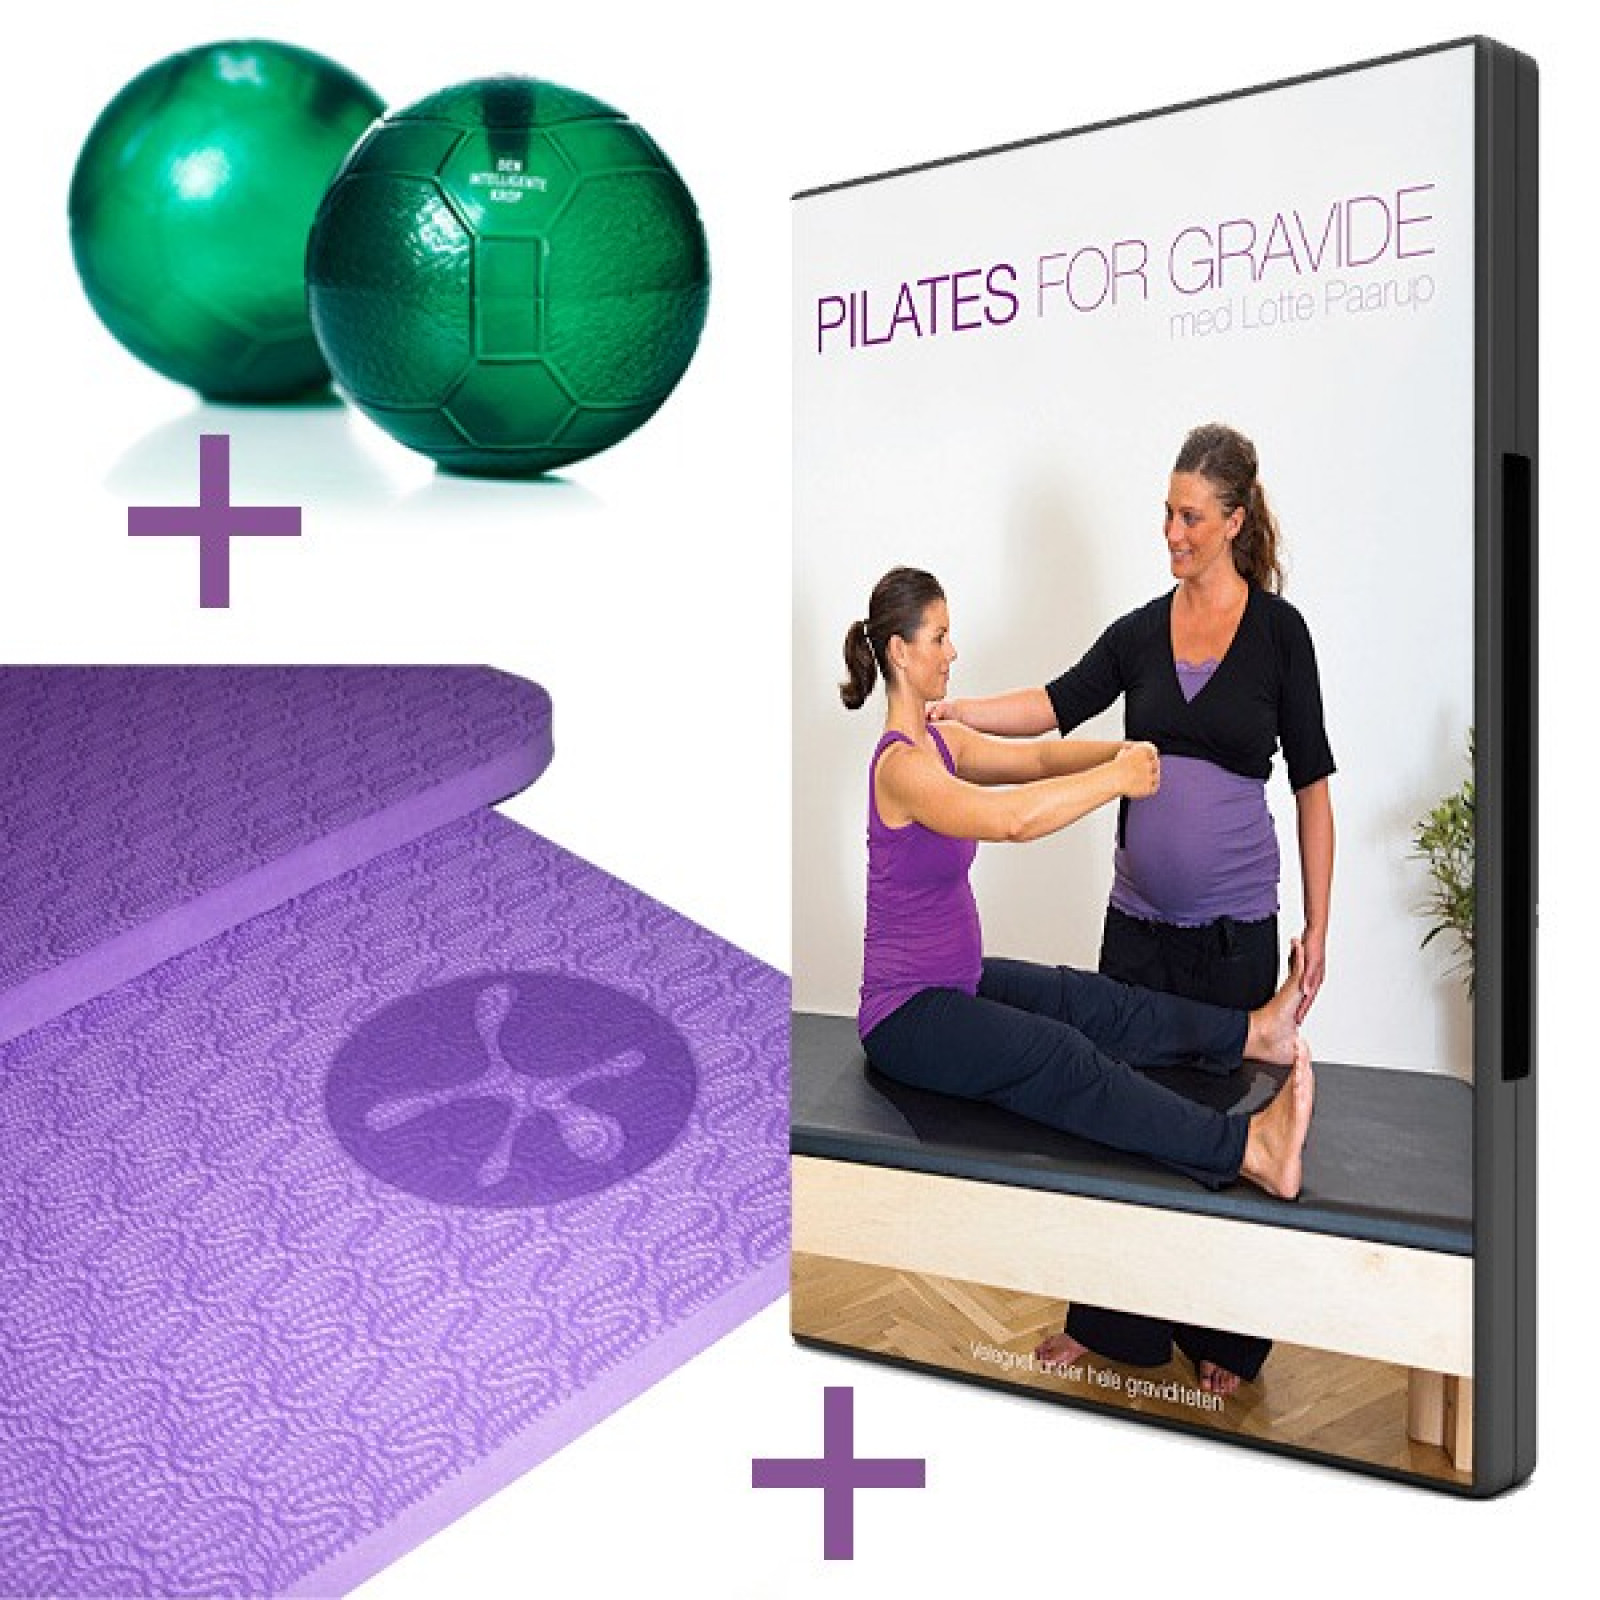 Pilates for gravide (DVD + Grønne bolde + Måtte)